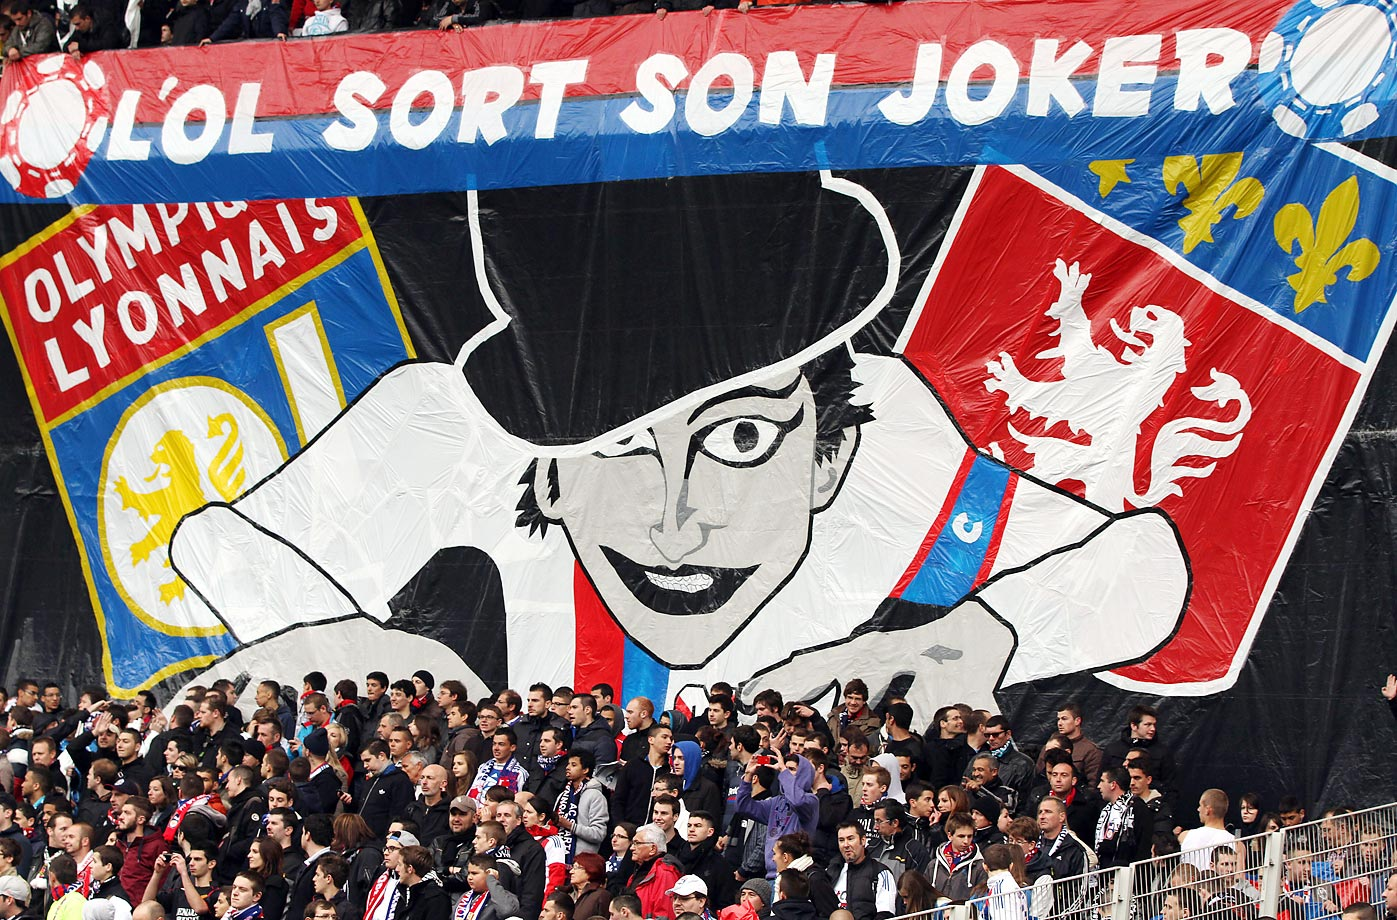 Lyon fans during a game against Saint Etienne.